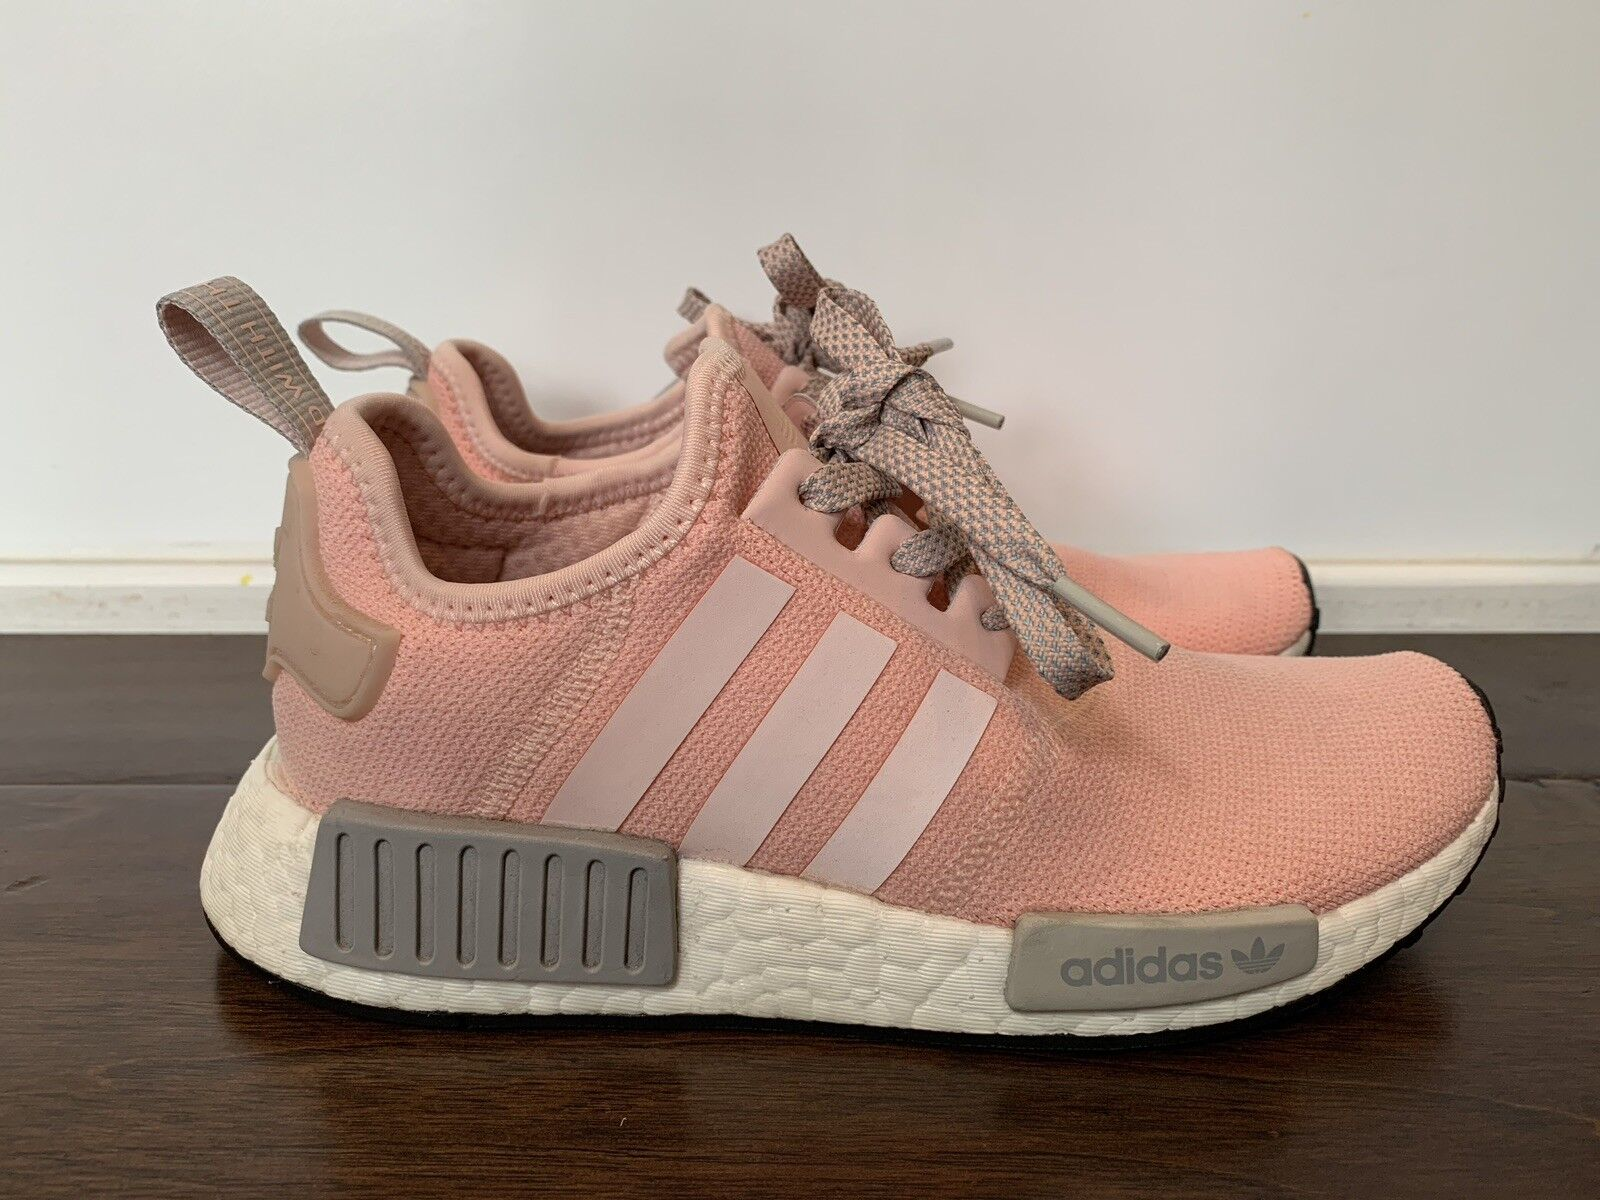 premium selection 8e5e2 969f2 adidas NMD R1 By3059 Vapour Pink Light Onix Grey Offspring Women's 6